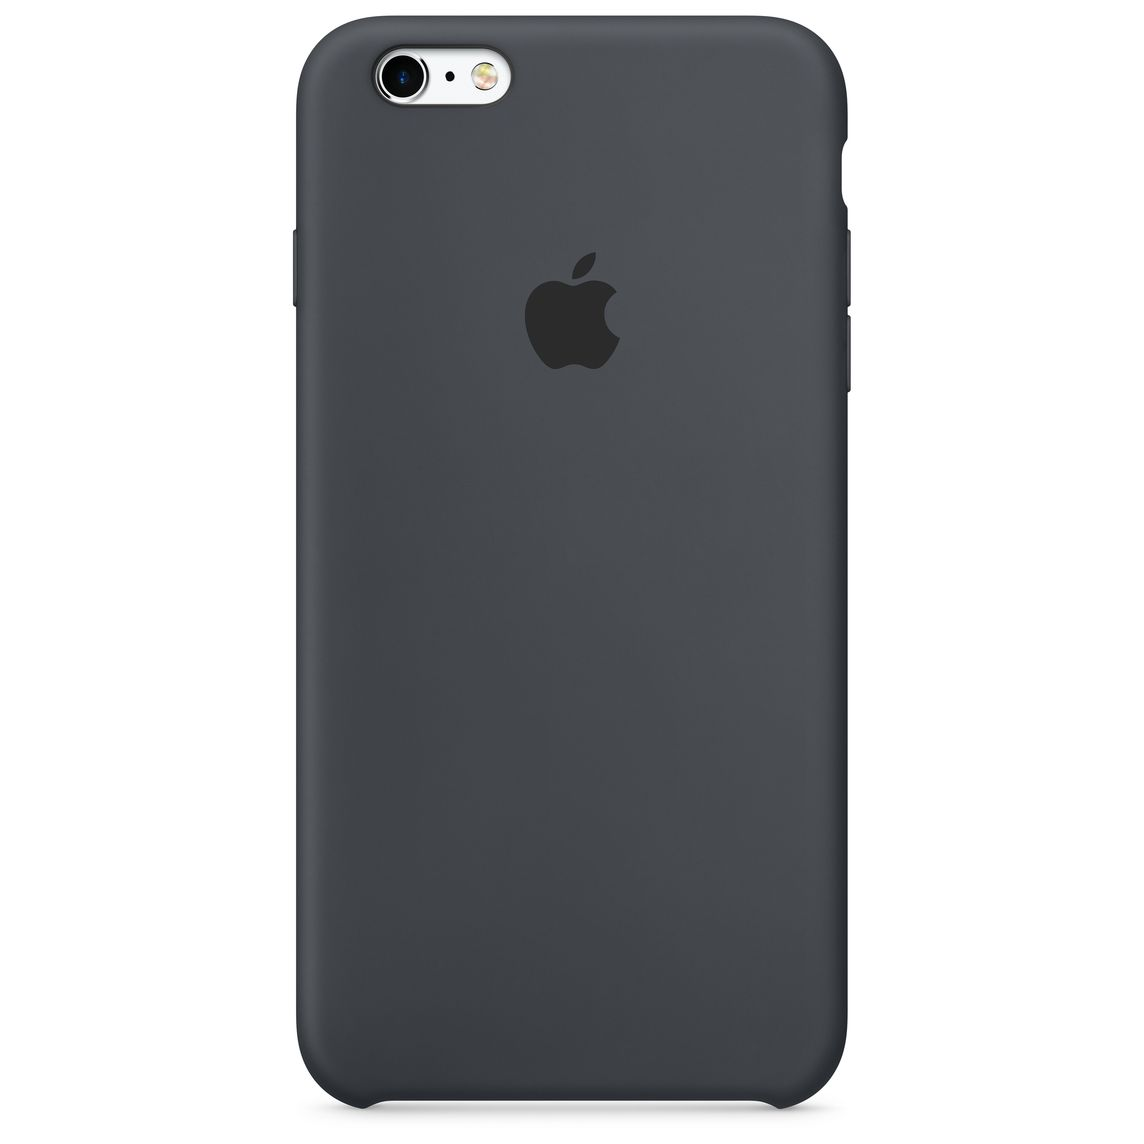 best website 8526f 329f0 iPhone 6 Plus / 6s Plus Silicone Case - Charcoal Gray